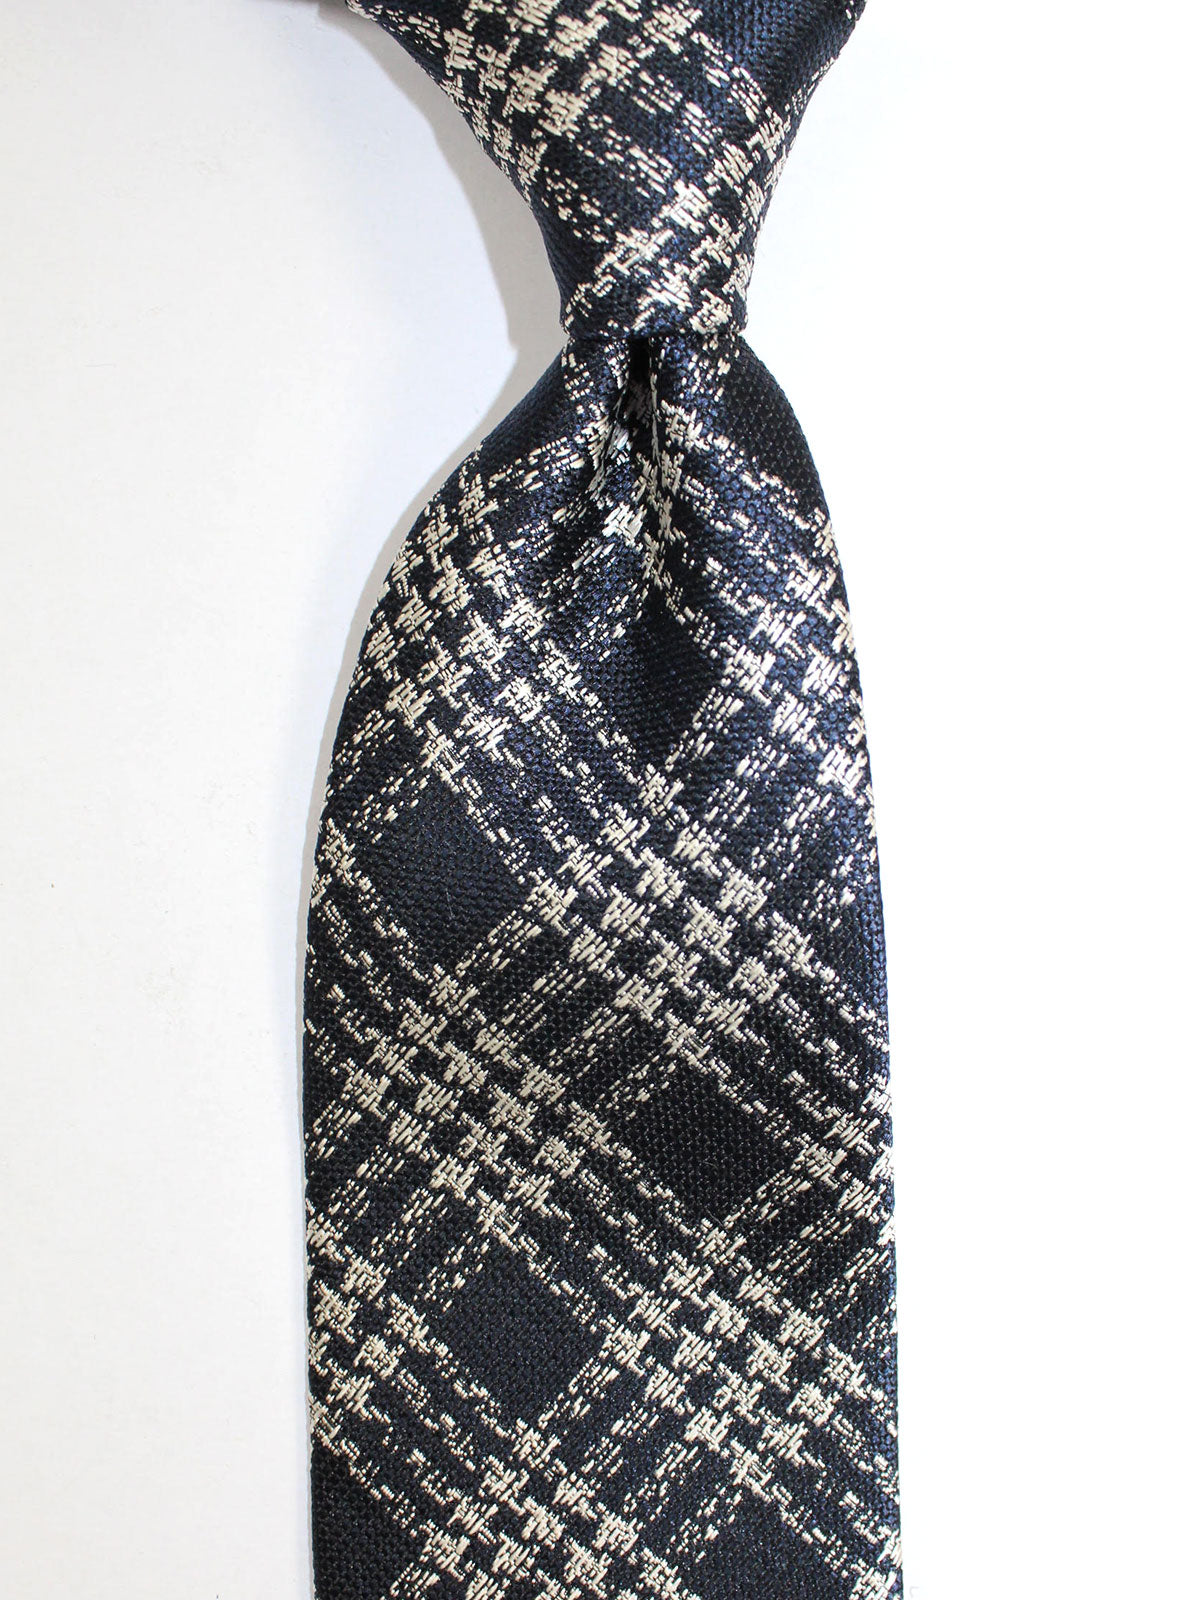 Tom Ford Tie Dark Blue Silver Glen Check Design